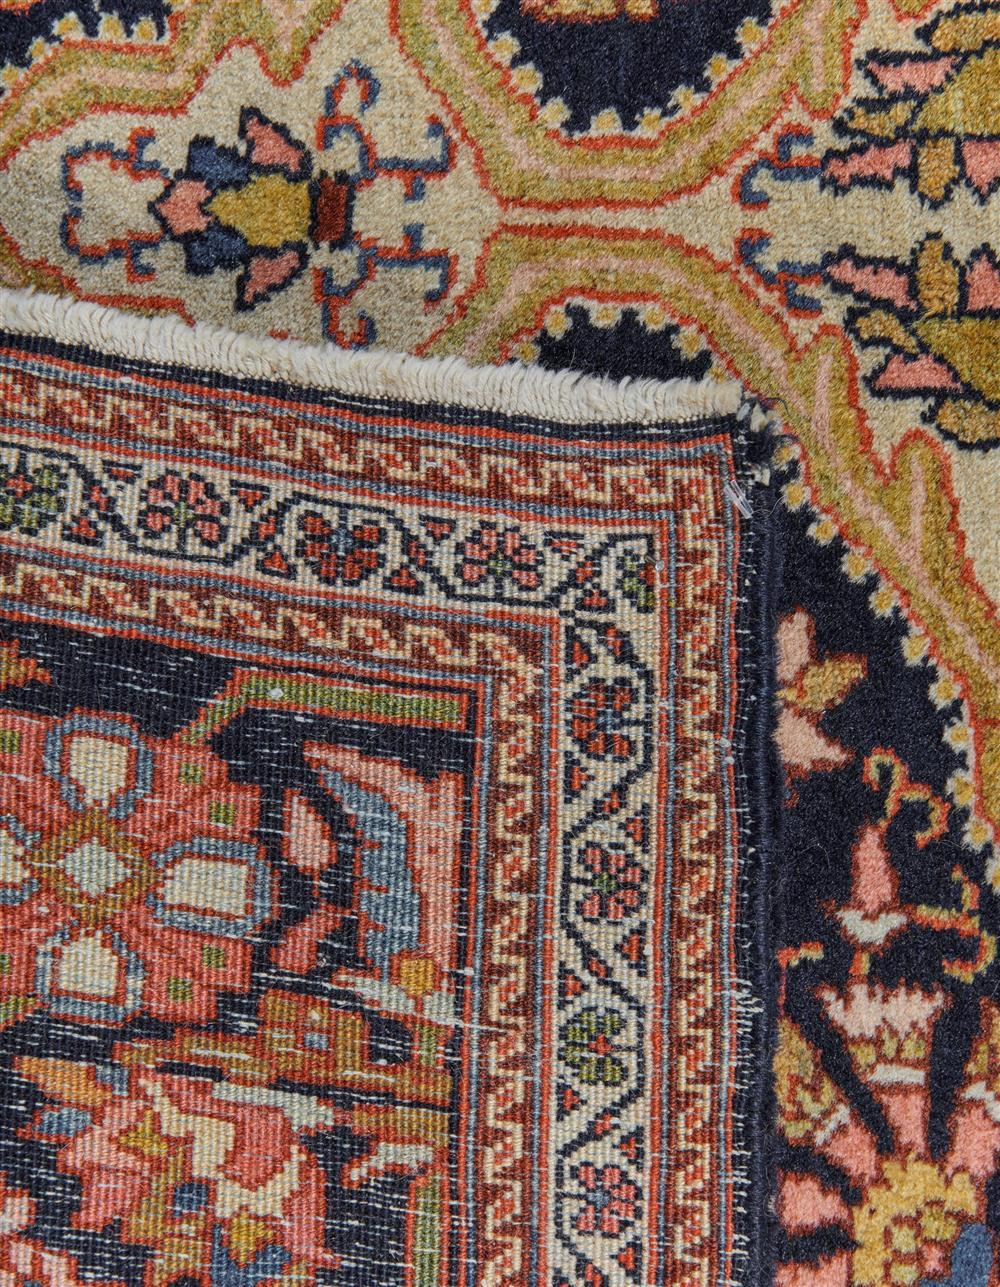 Sarouk Fereghan Rug, Persia, first quarter 20th century; 7 ft. 2 in. x 4 ft. 6 in.